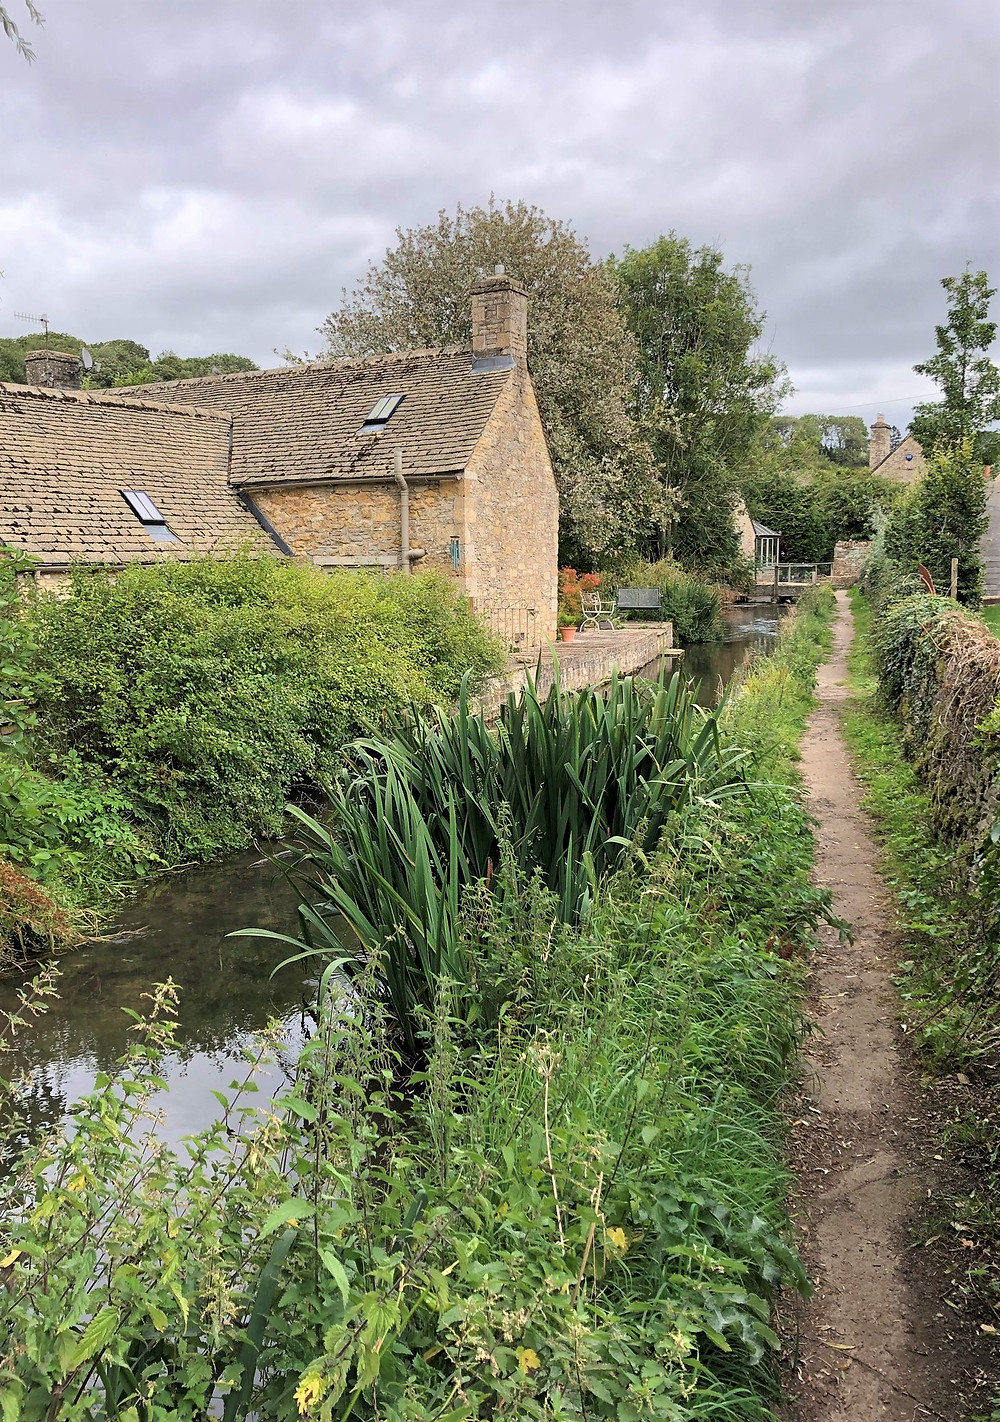 River Windrush flowing through Village of Naunton of the Cotswolds